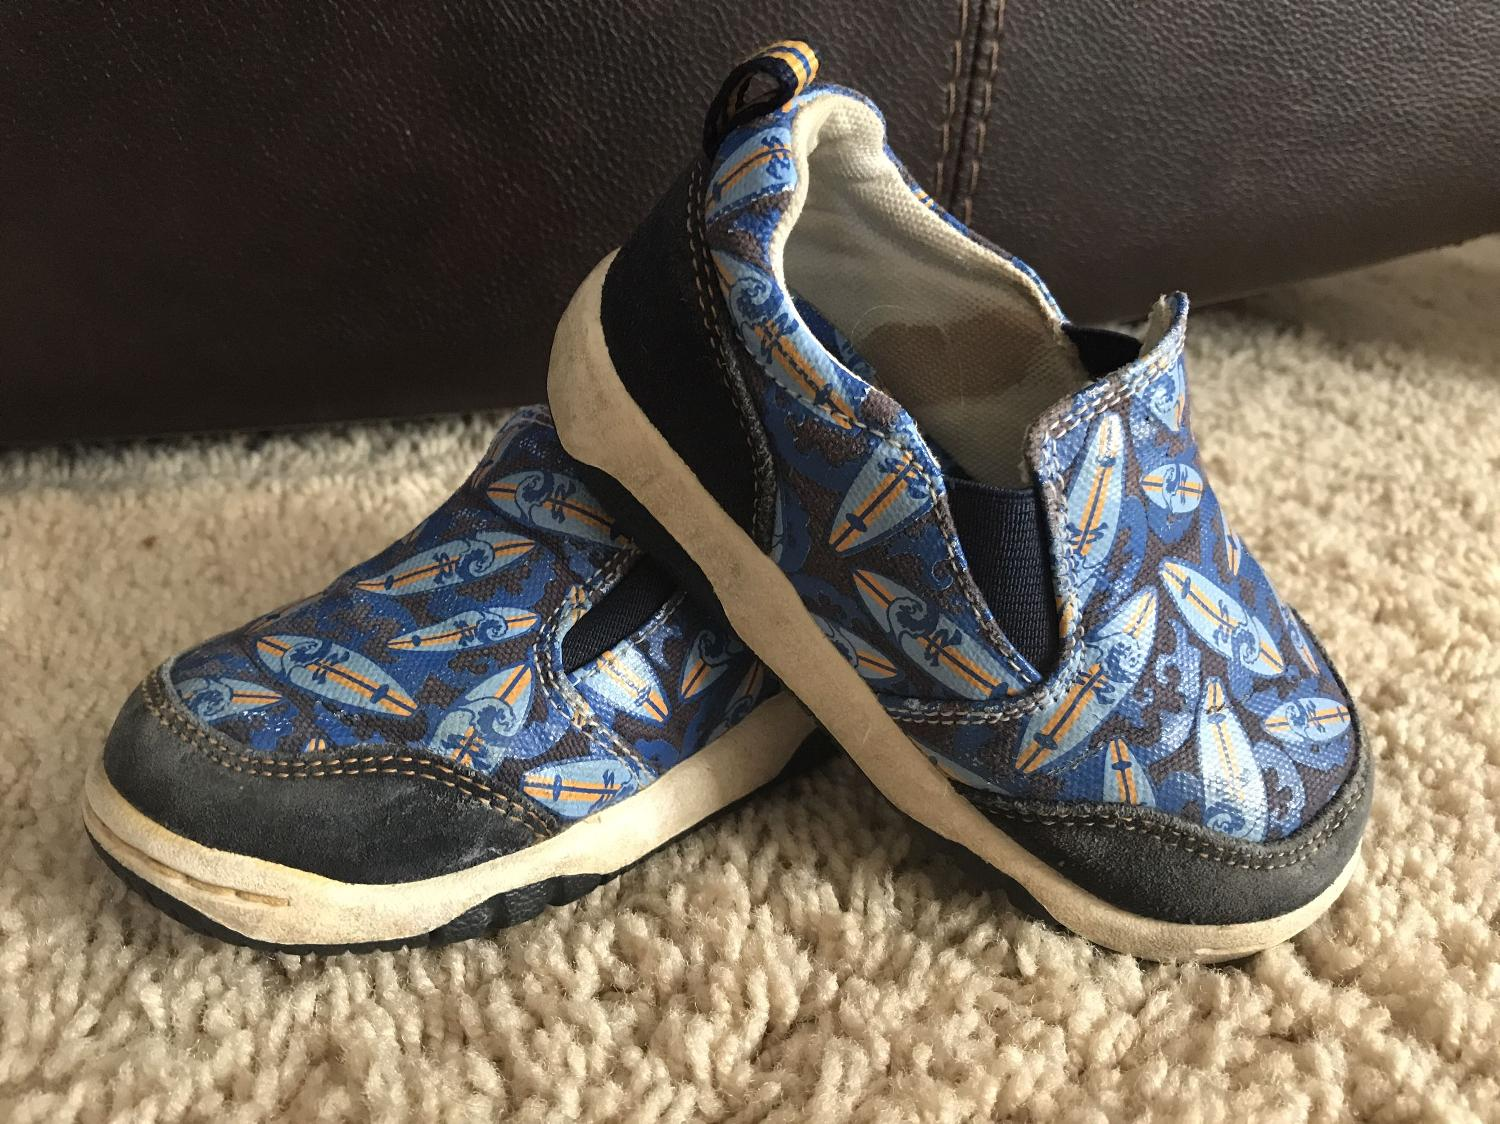 ... Rite Slip-on Shoes for sale in Huntersville, North Carolina for 2017